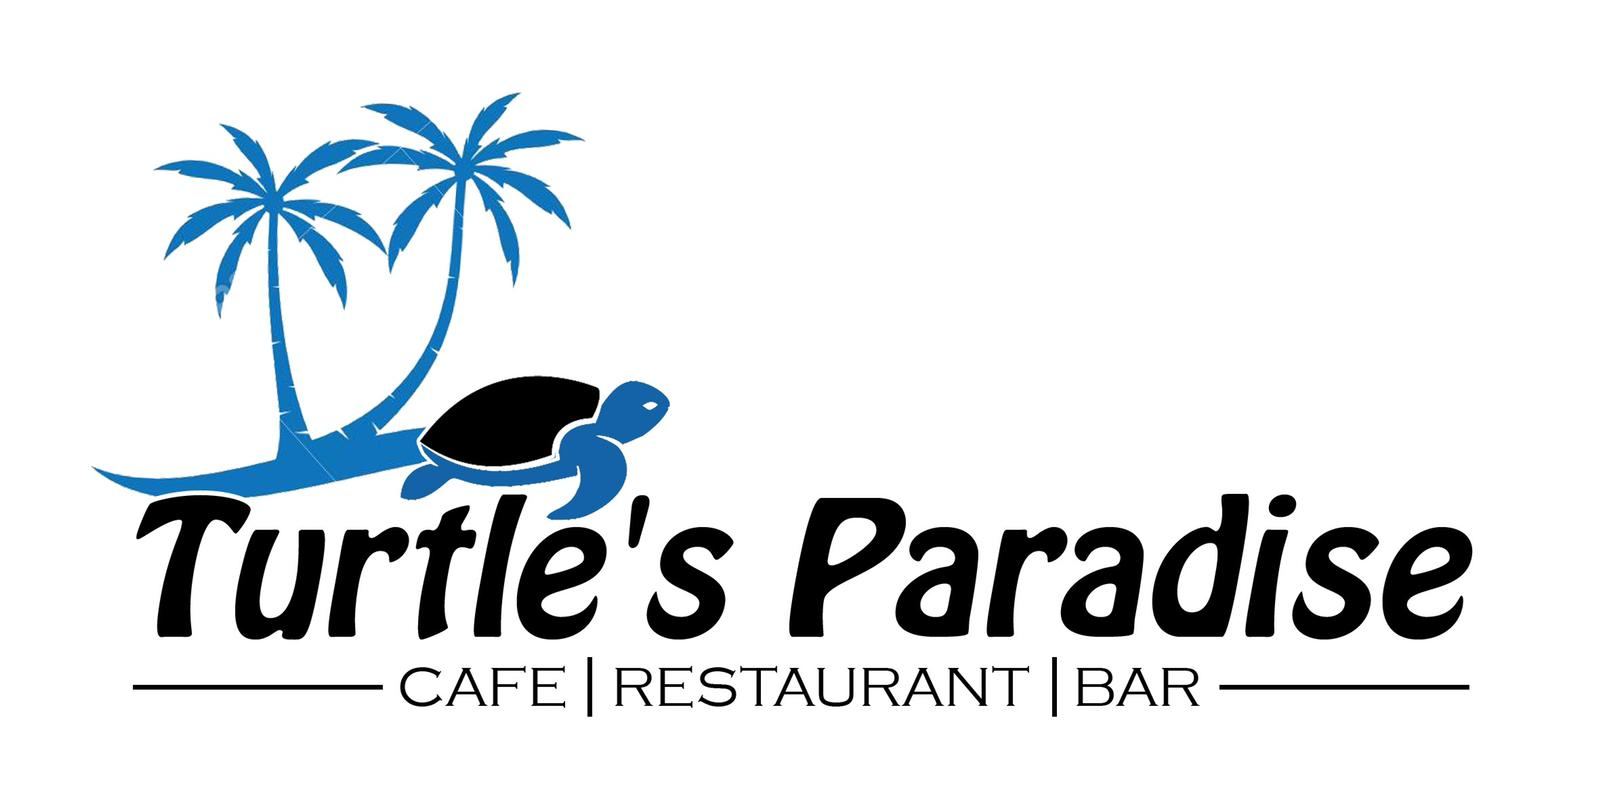 Turtle's Paradise Cafe, Restaurant & Bar